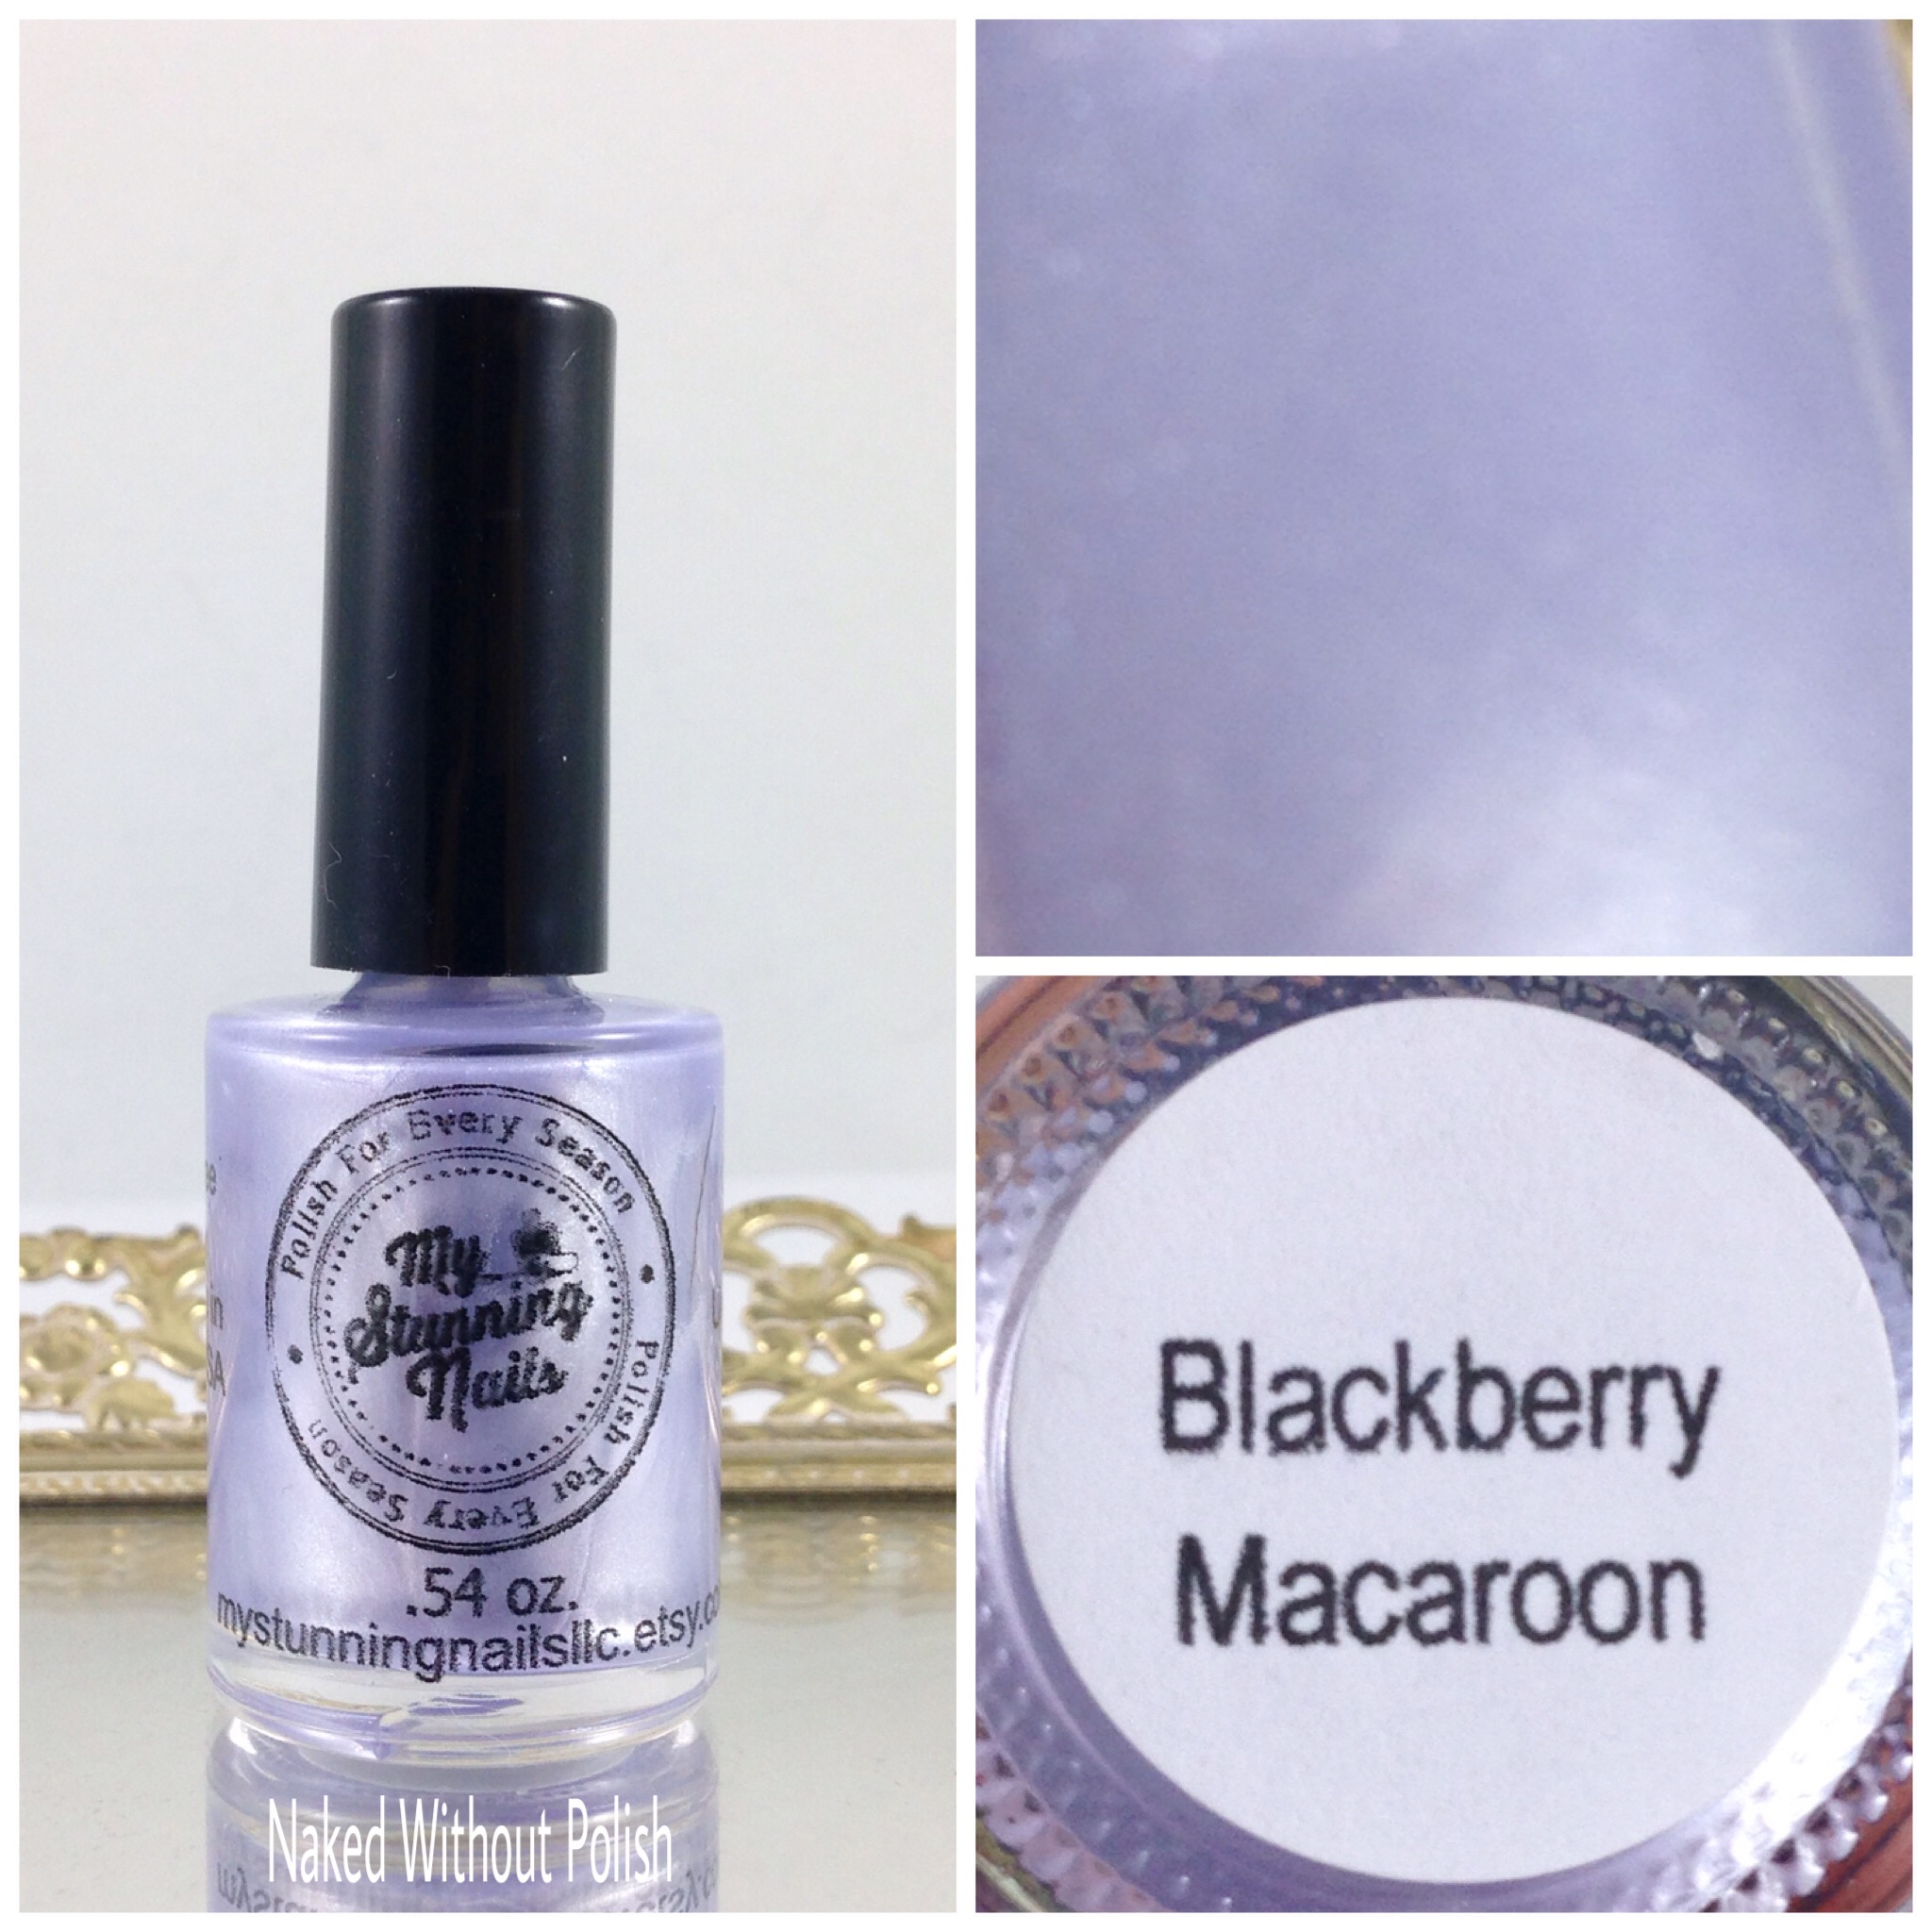 My-Stunning-Nails-Blackberry-Macaroon-1